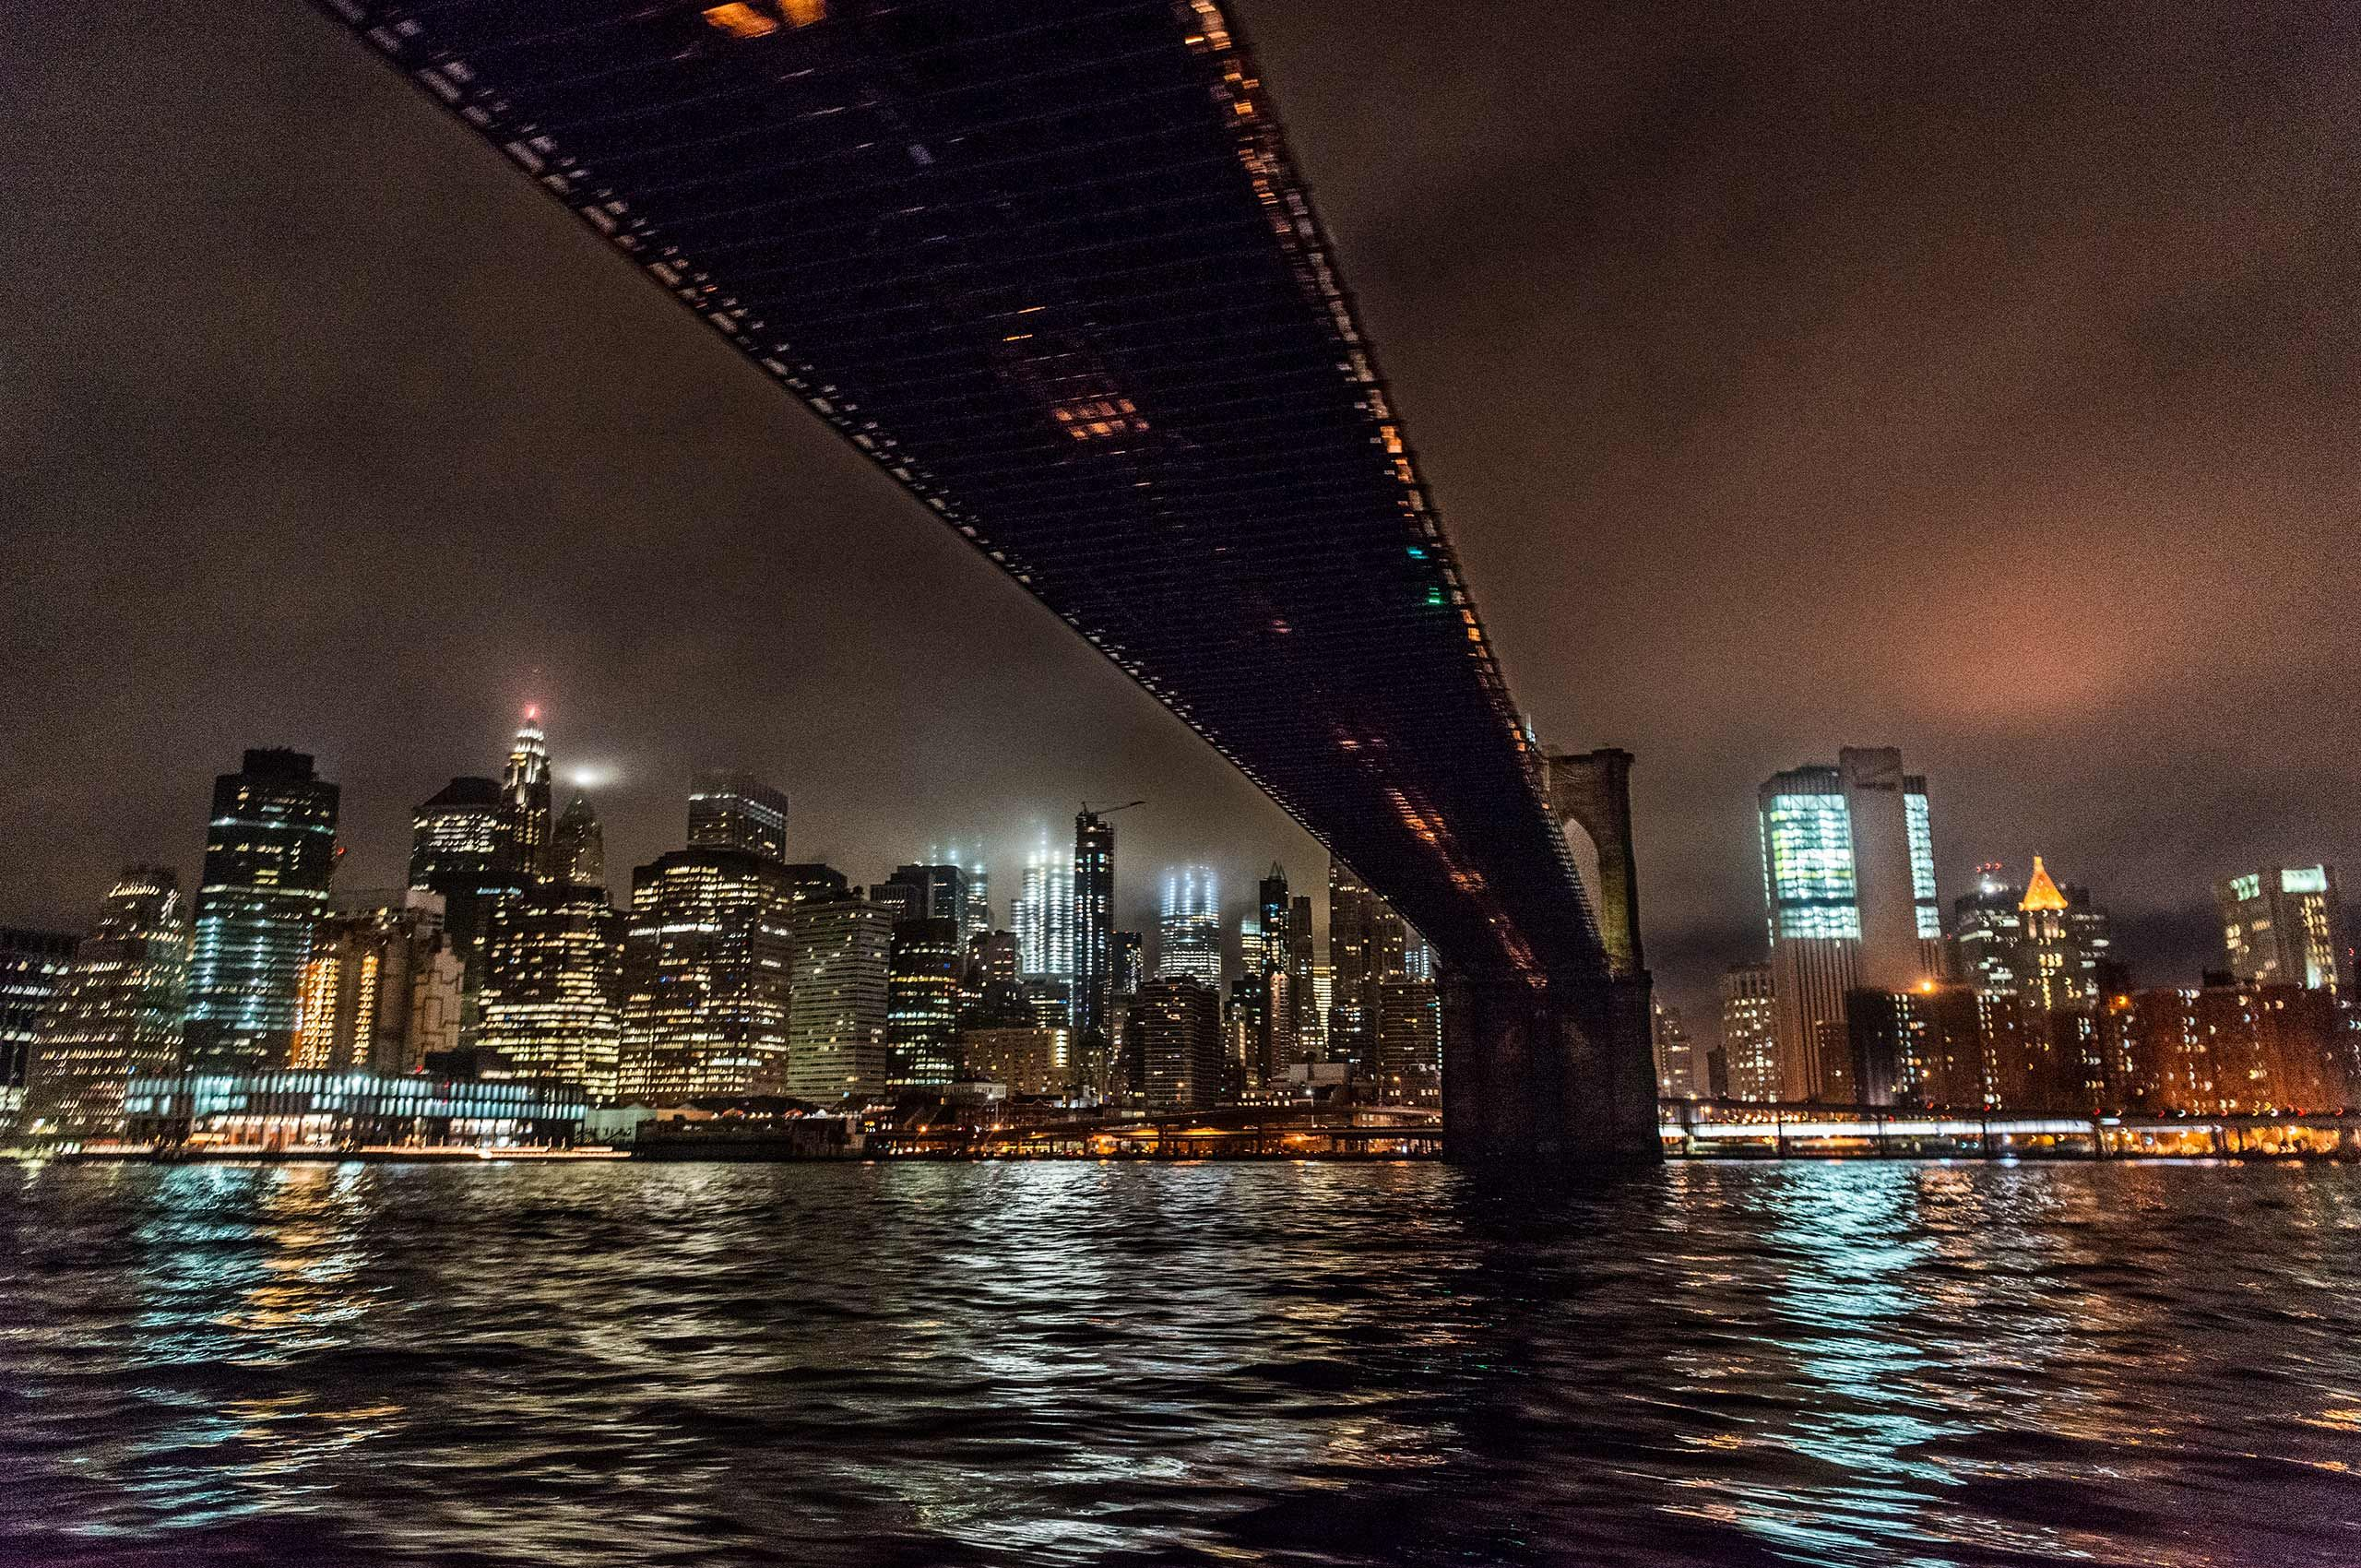 Brooklynbridge-night-bigcitylights-water-eastriver-HenrikOlundPhotography.jpg